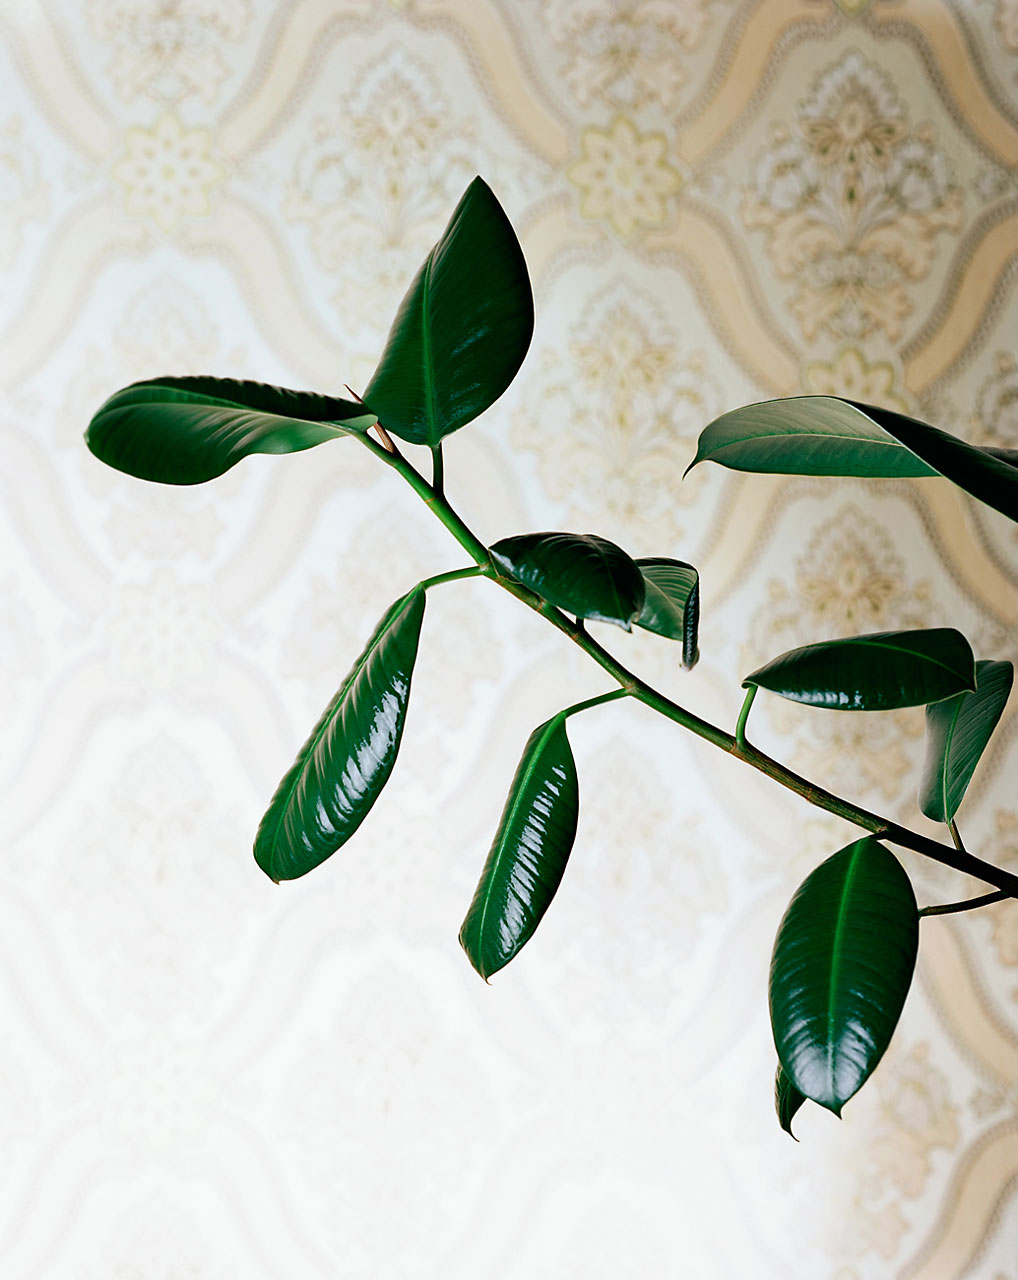 Sabine-Scheer-still-life-photography-gummibaum-rubber-plant-tree